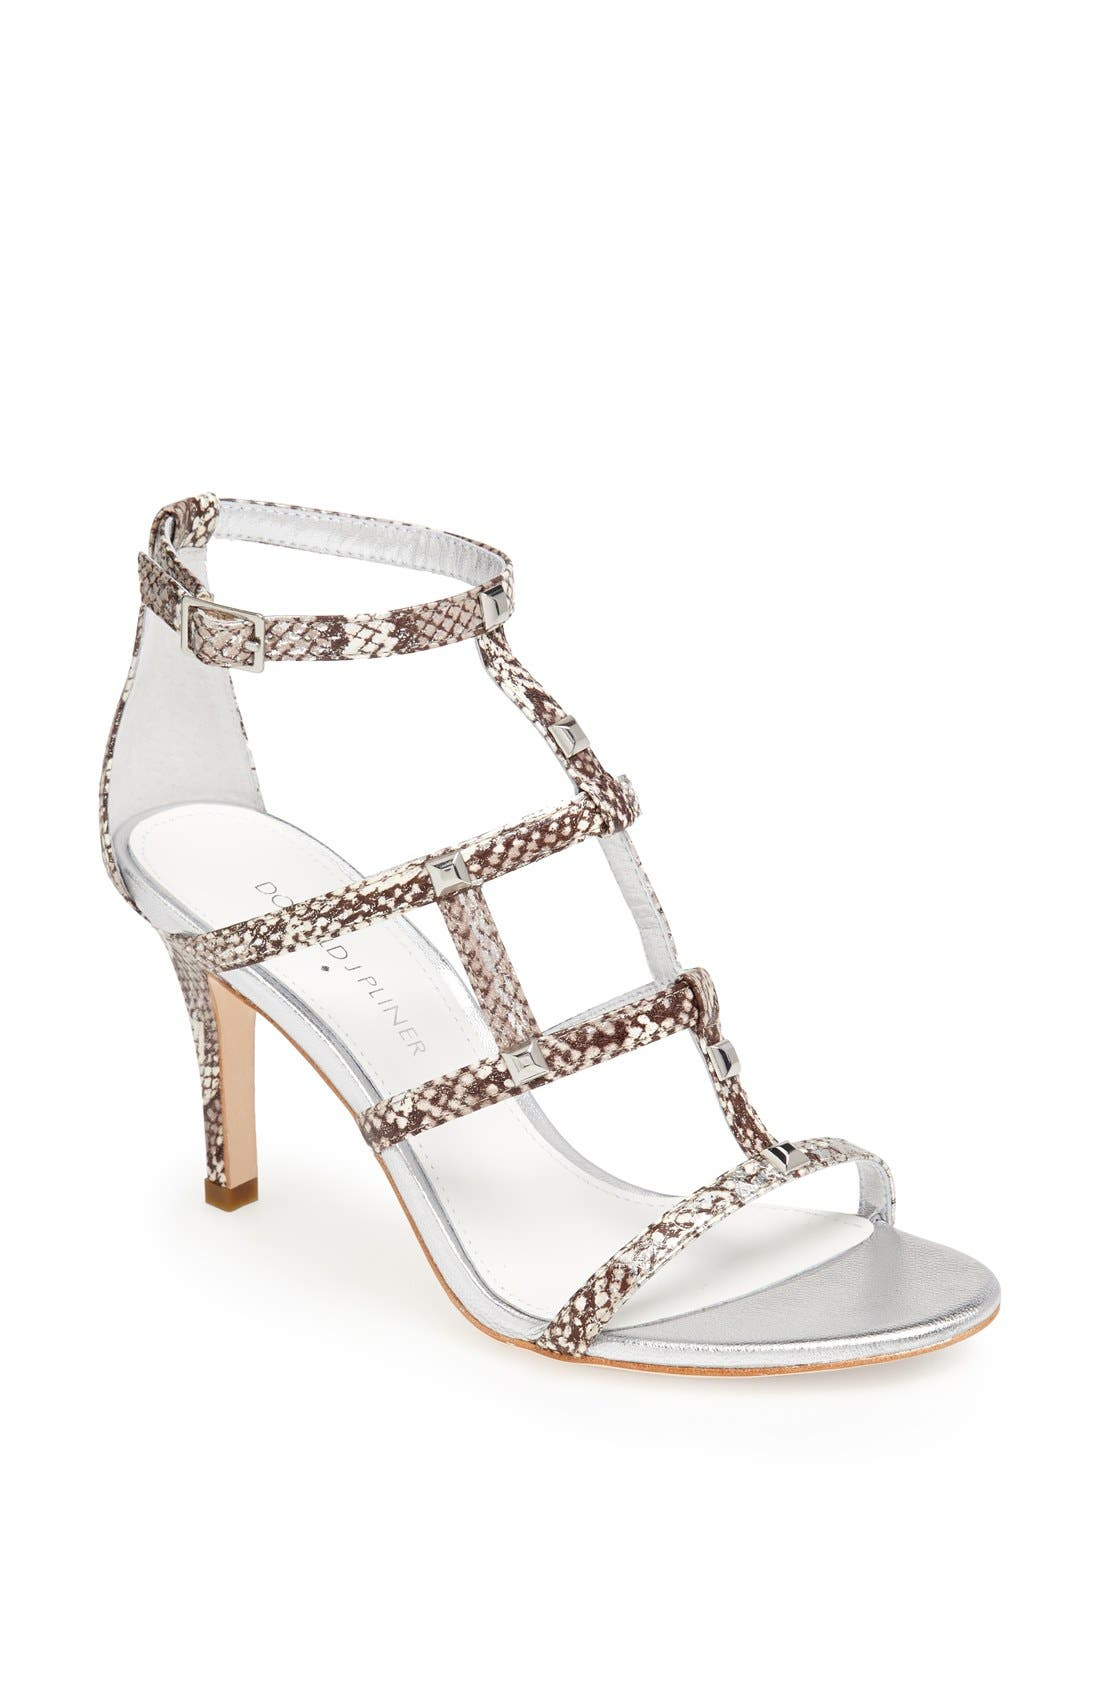 Alternate Image 1 Selected - Donald J Pliner 'Thee' Sandal